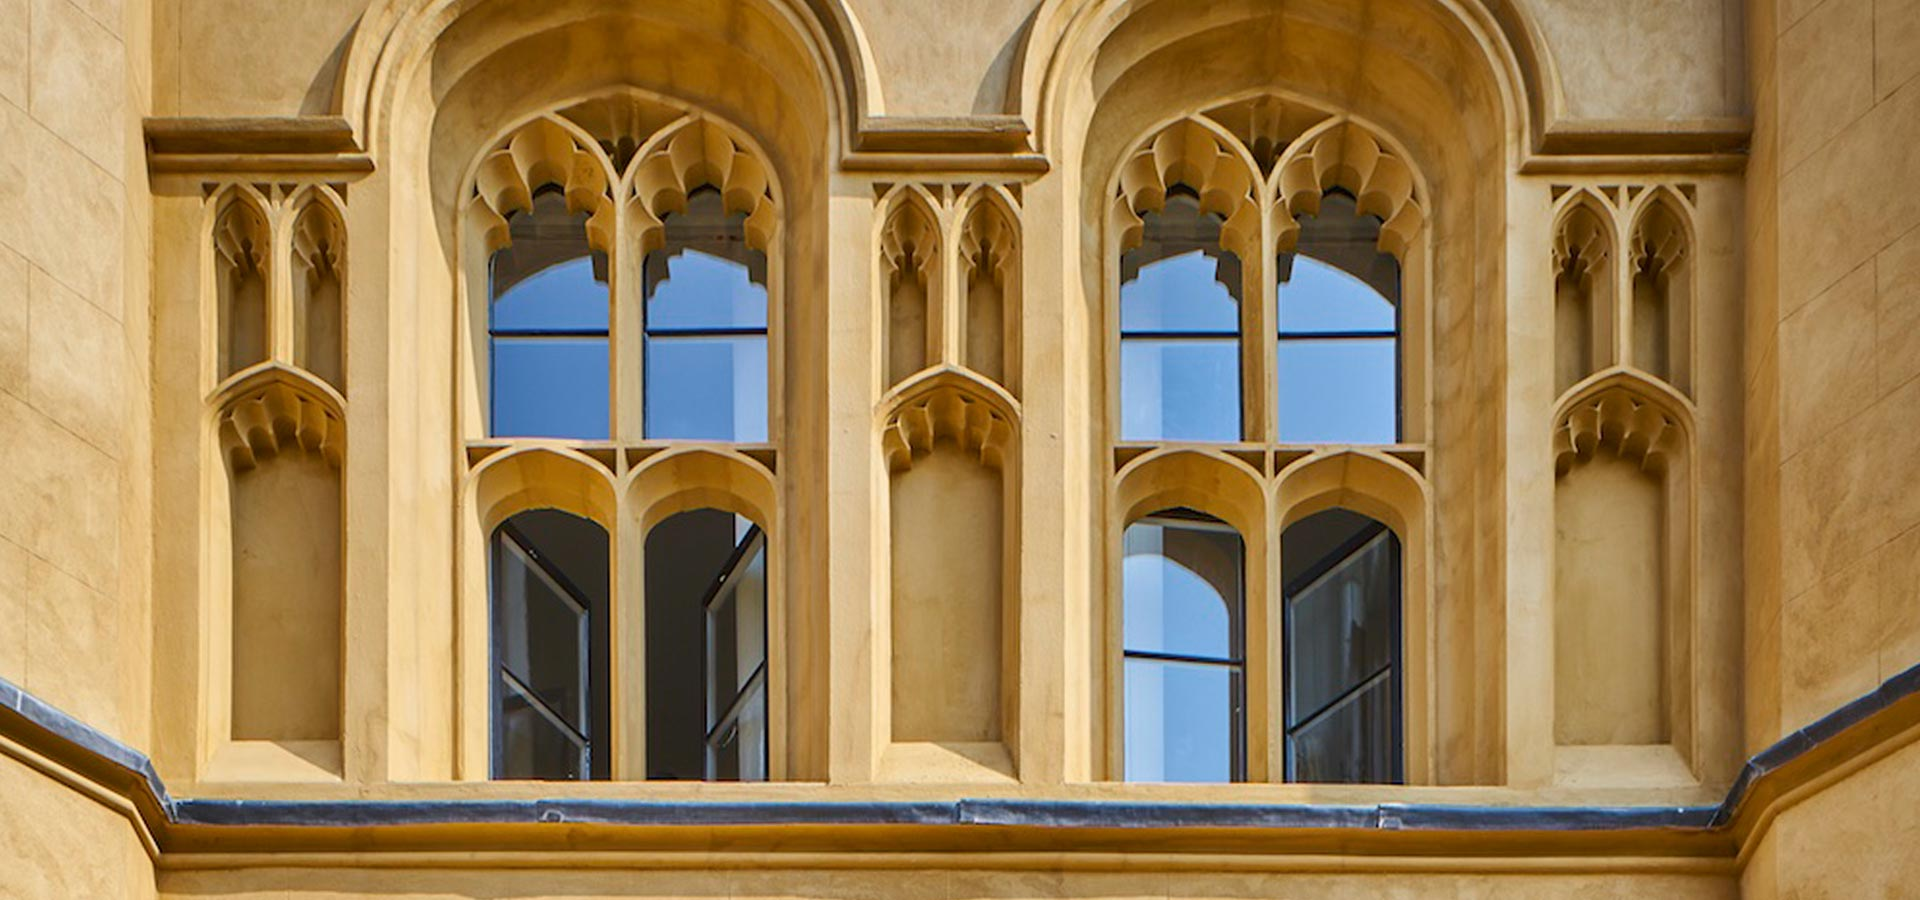 A heritage mansion with double gazed custom made arched windows